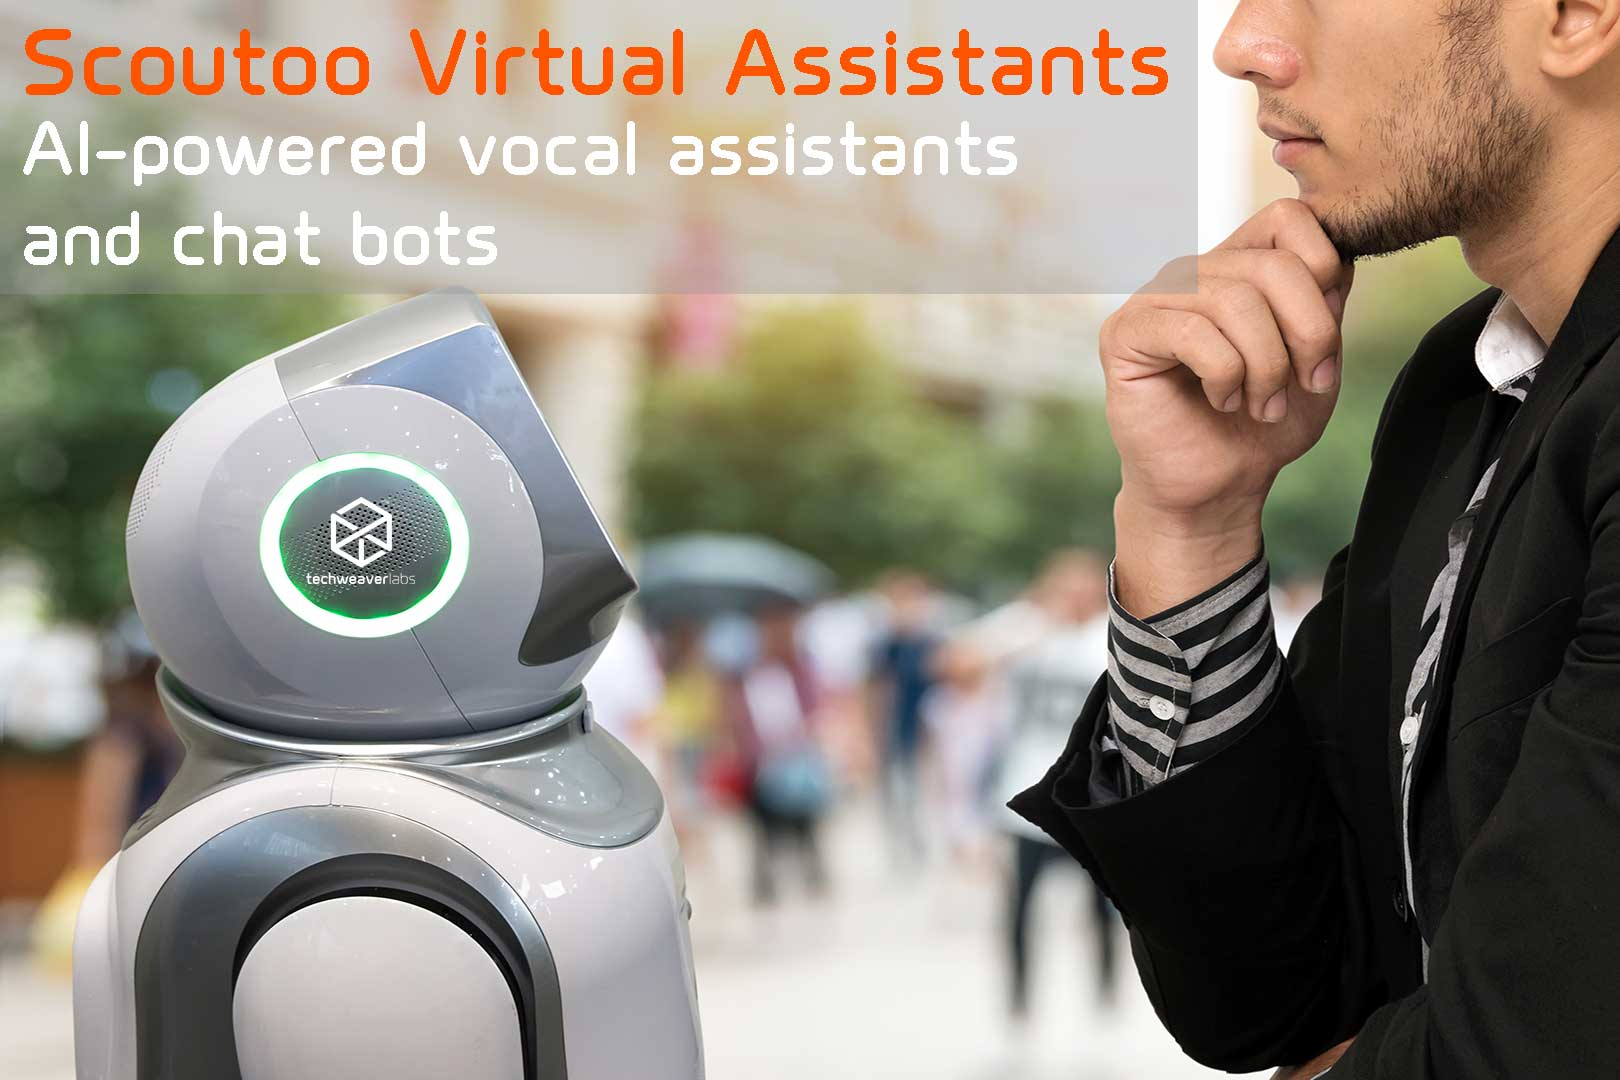 Scoutoo Virtual Assistants